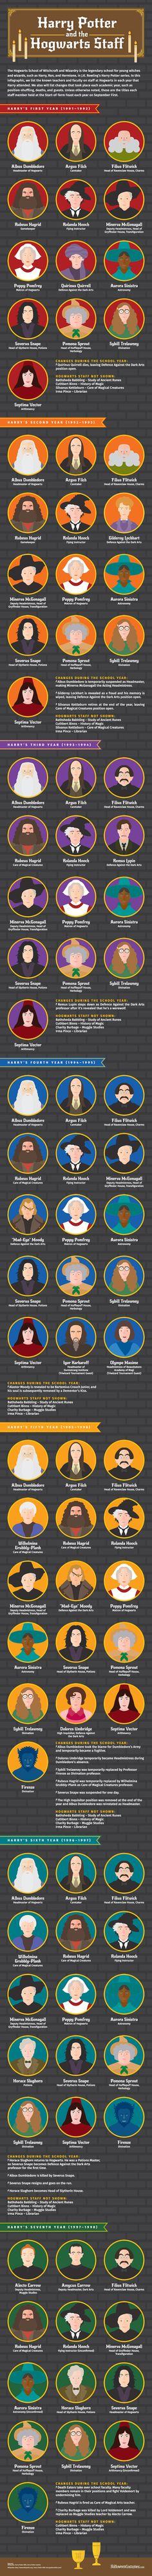 Harry Potter & the Hogwarts Staff Infographic - From Dumbledore to Firenze